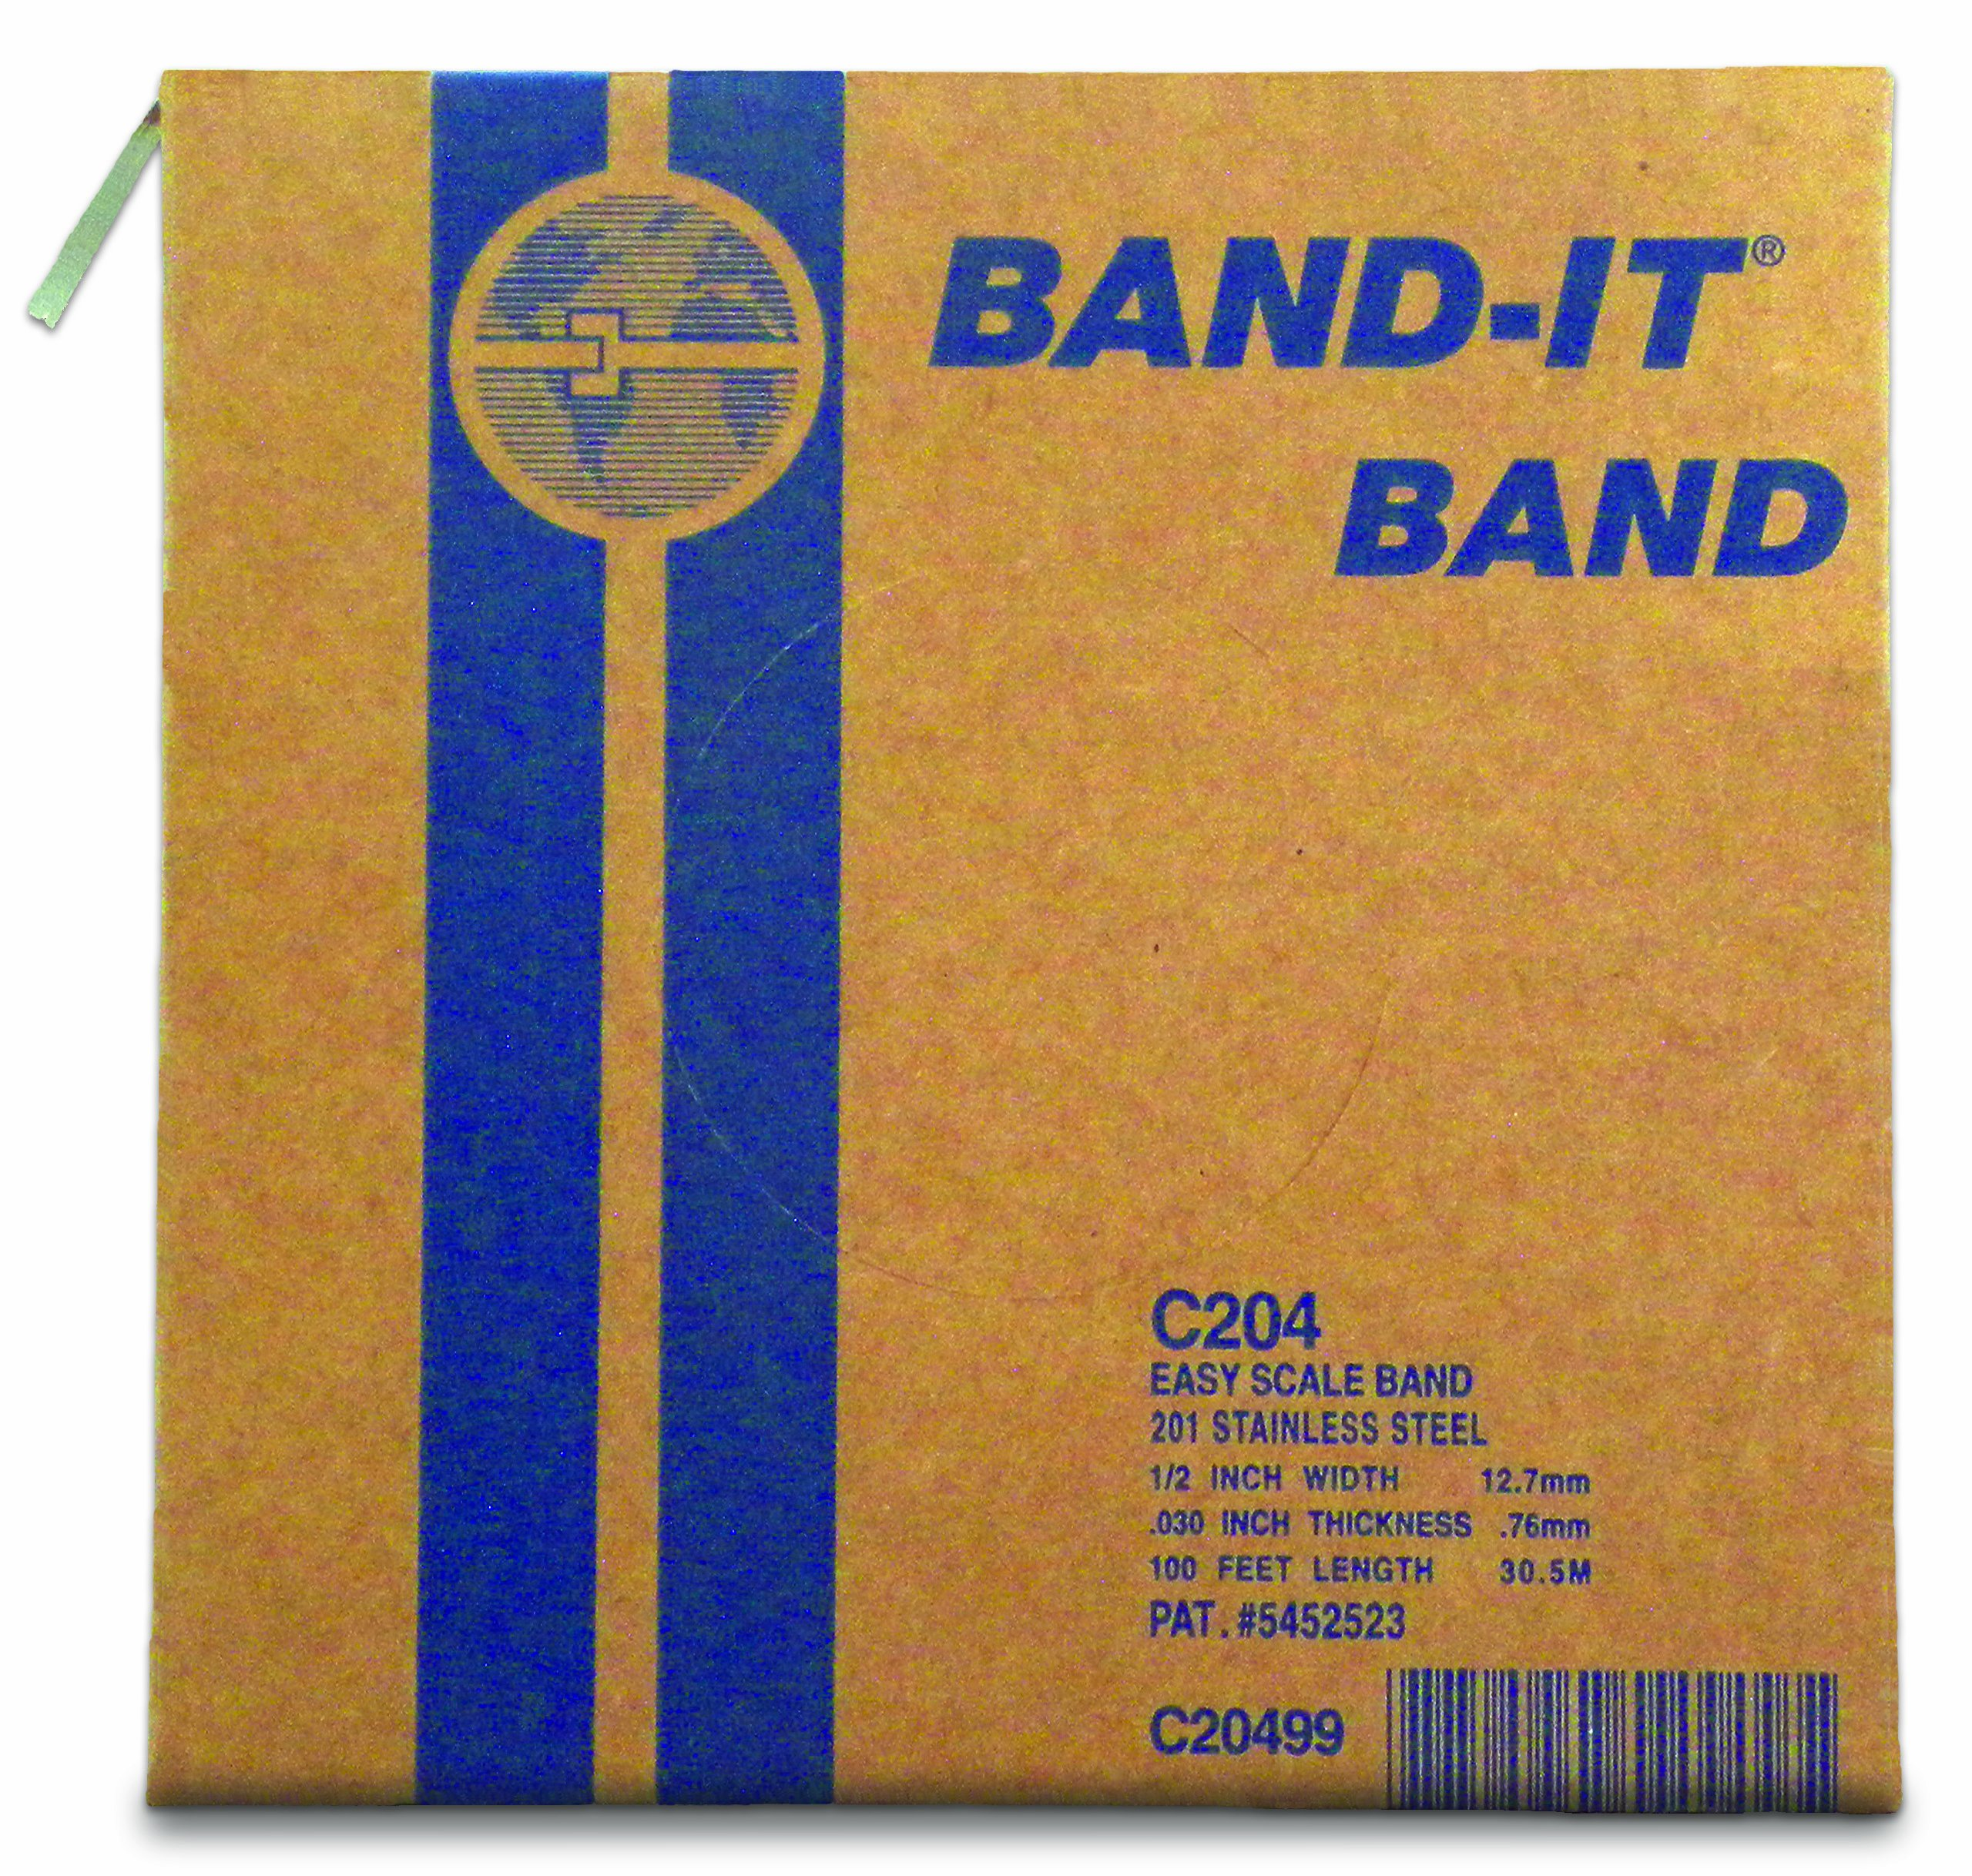 BAND-IT C20499 201 Stainless Steel Bright Annealed Finish Band, 1/2'' Width X 0.030'' Thick, 100 Feet Roll